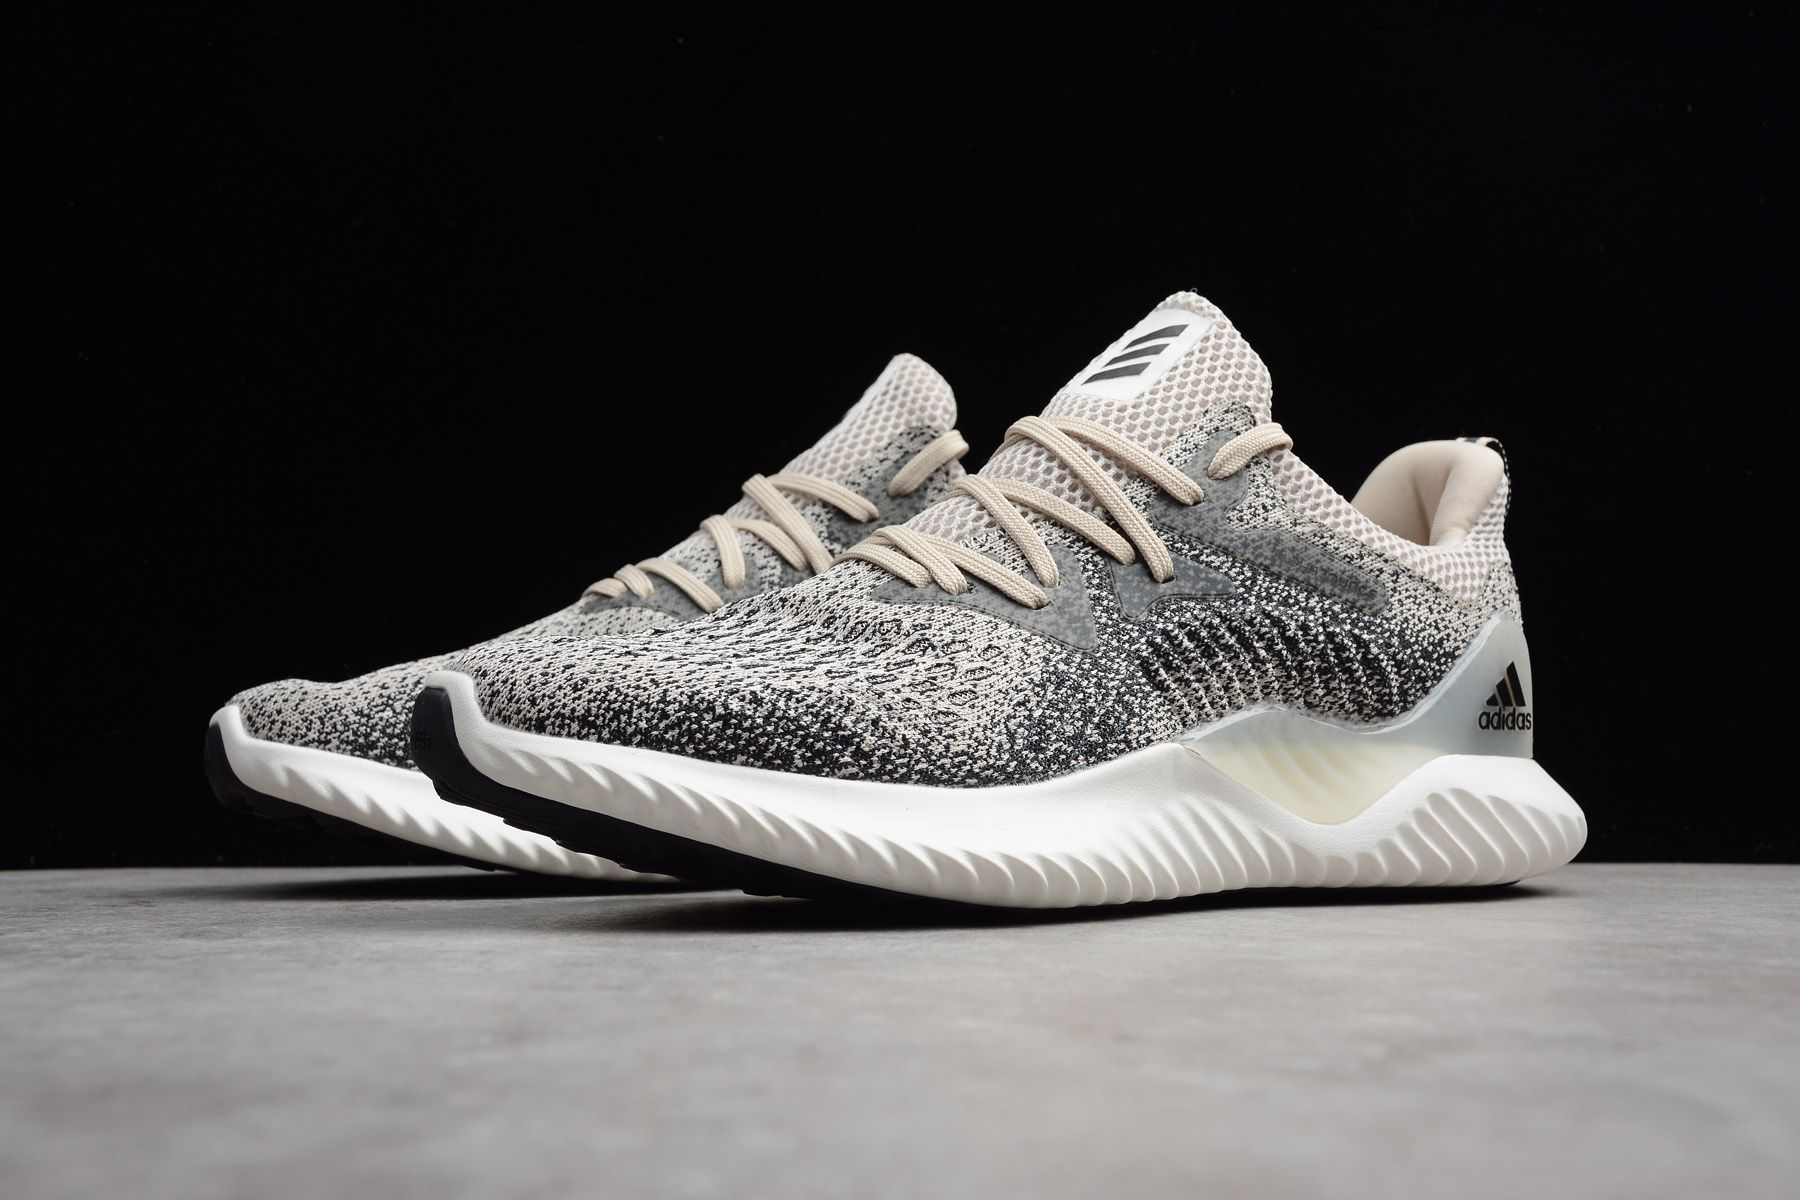 f3984d607 2018 adidas AlphaBounce Beyond M Beige Black B42287 Free Shipping